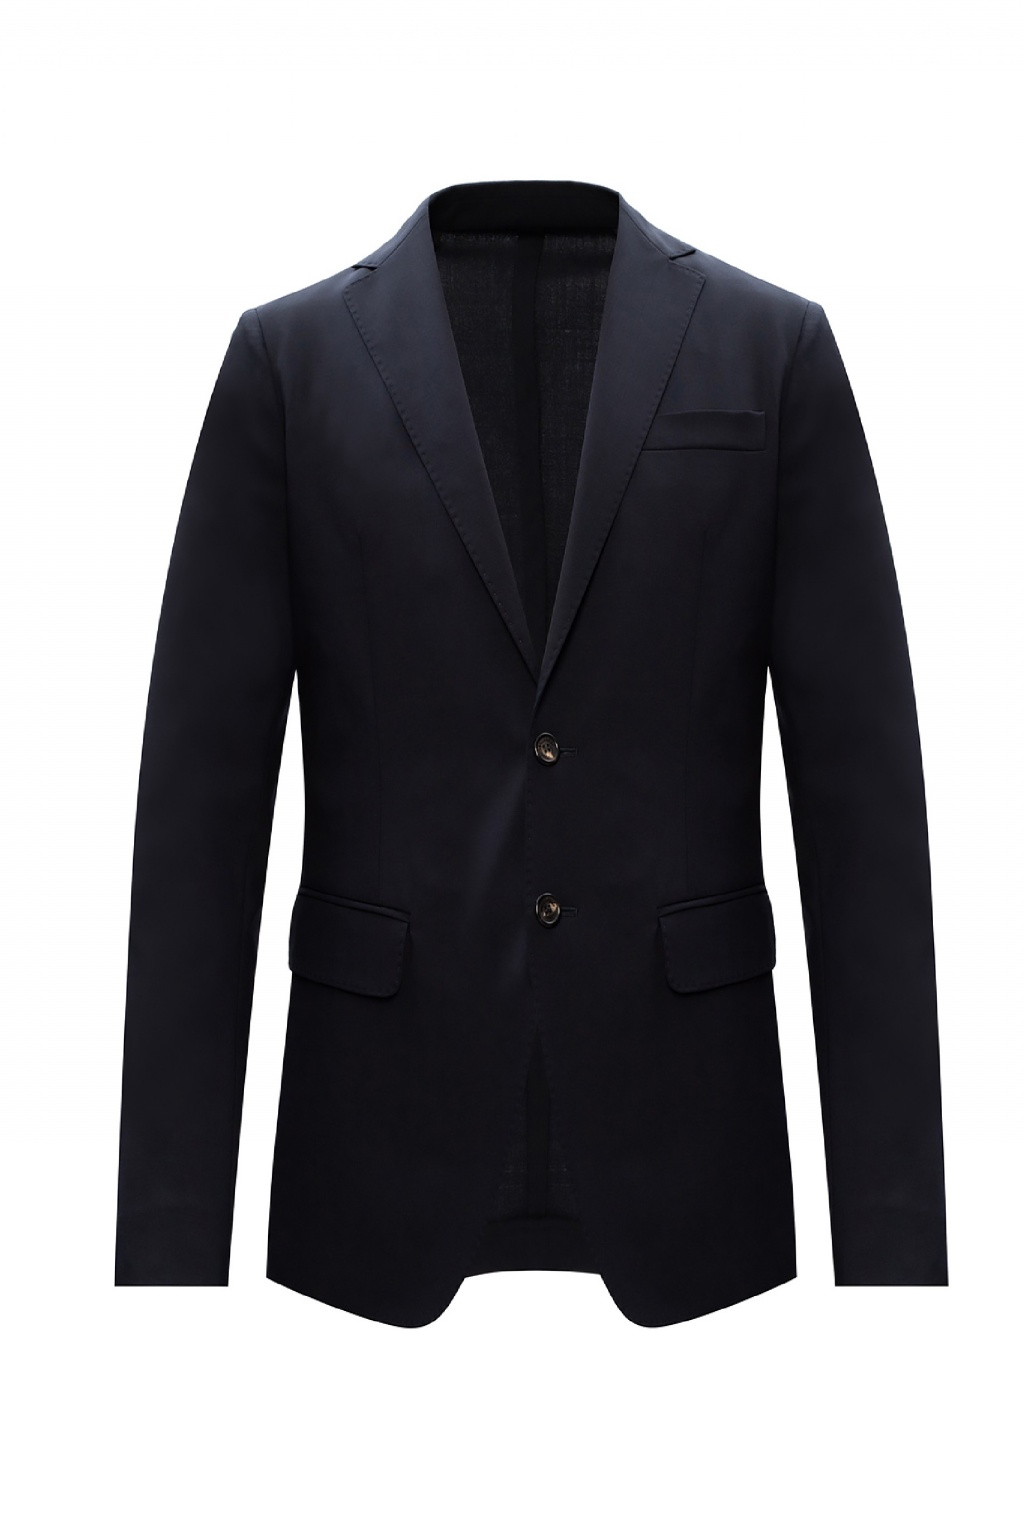 Dsquared2 Wool suit